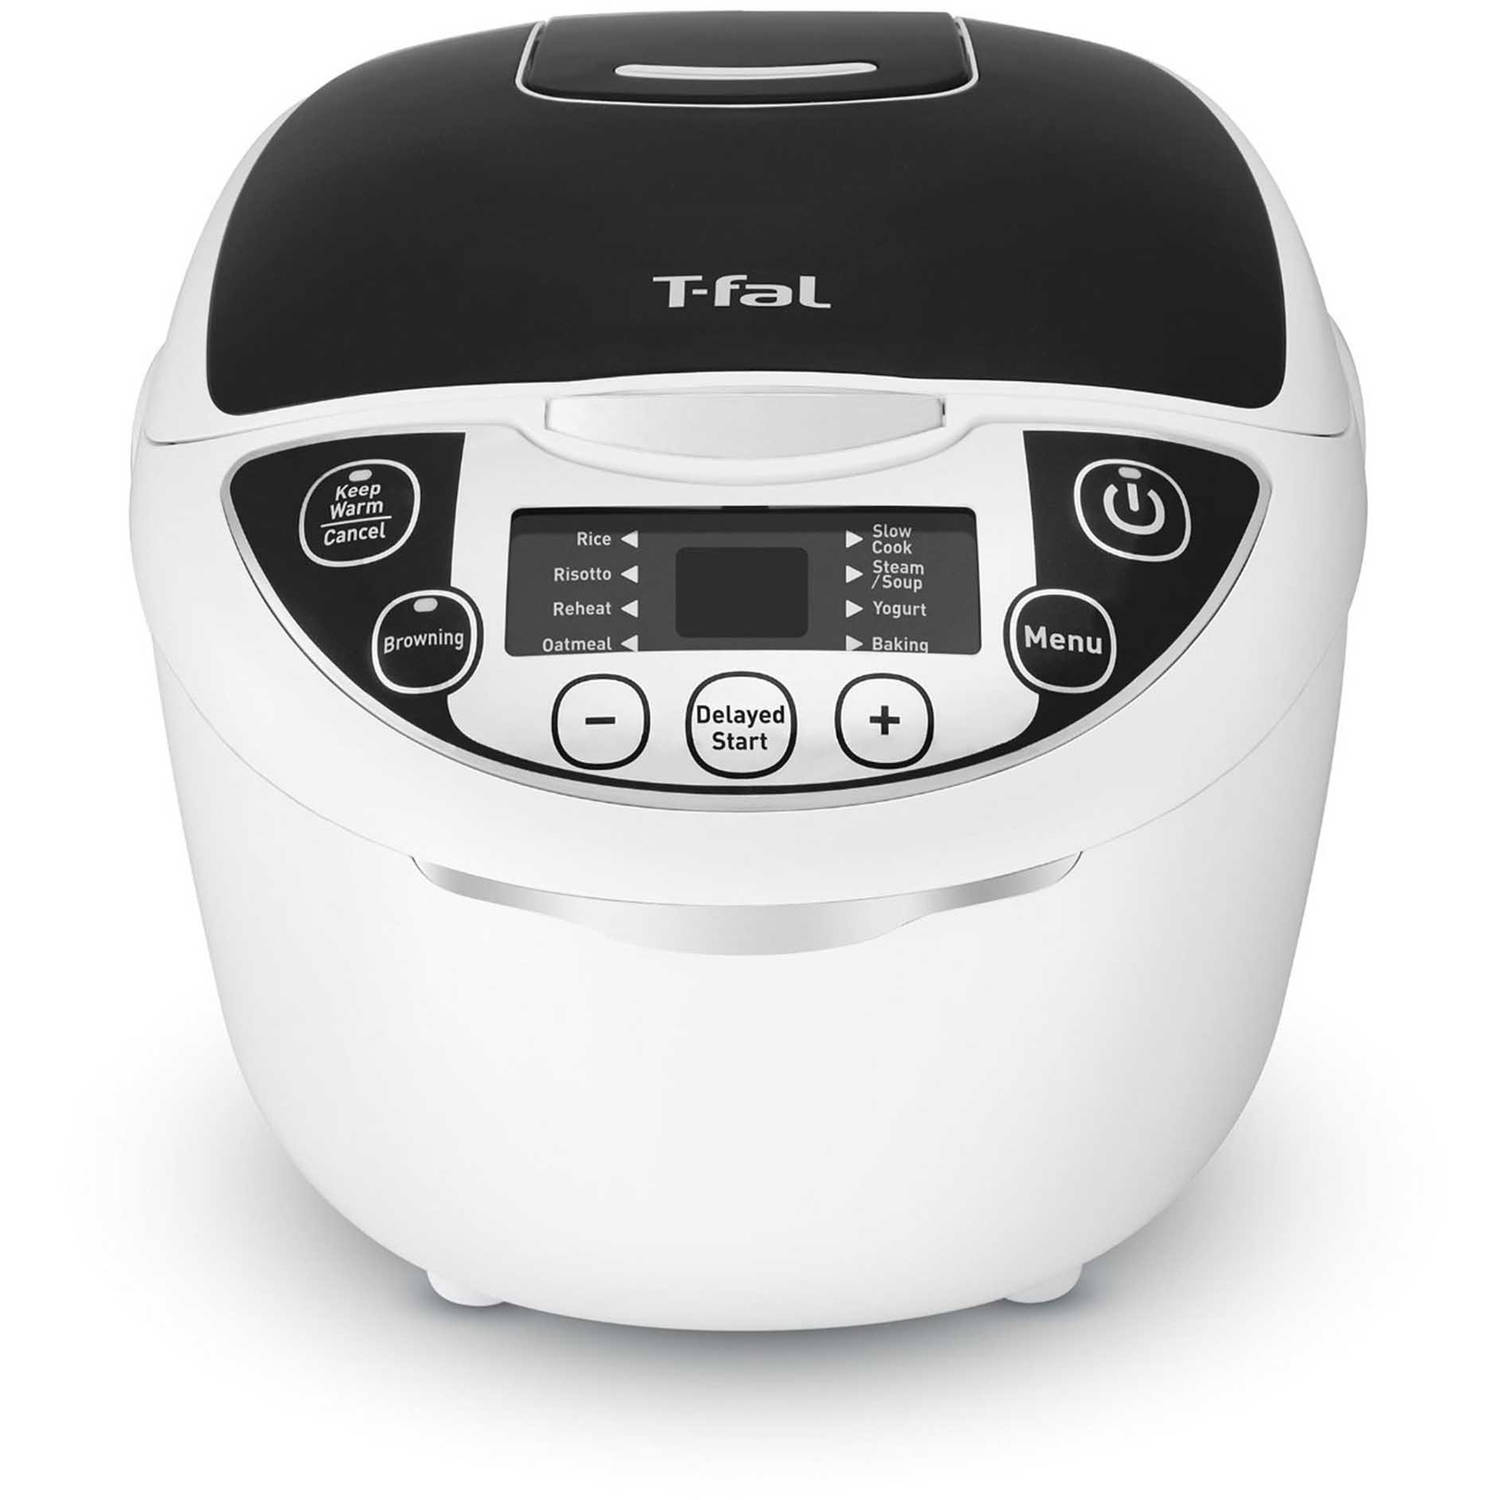 T-Fal 10-in-1 Rice and Multi Cooker